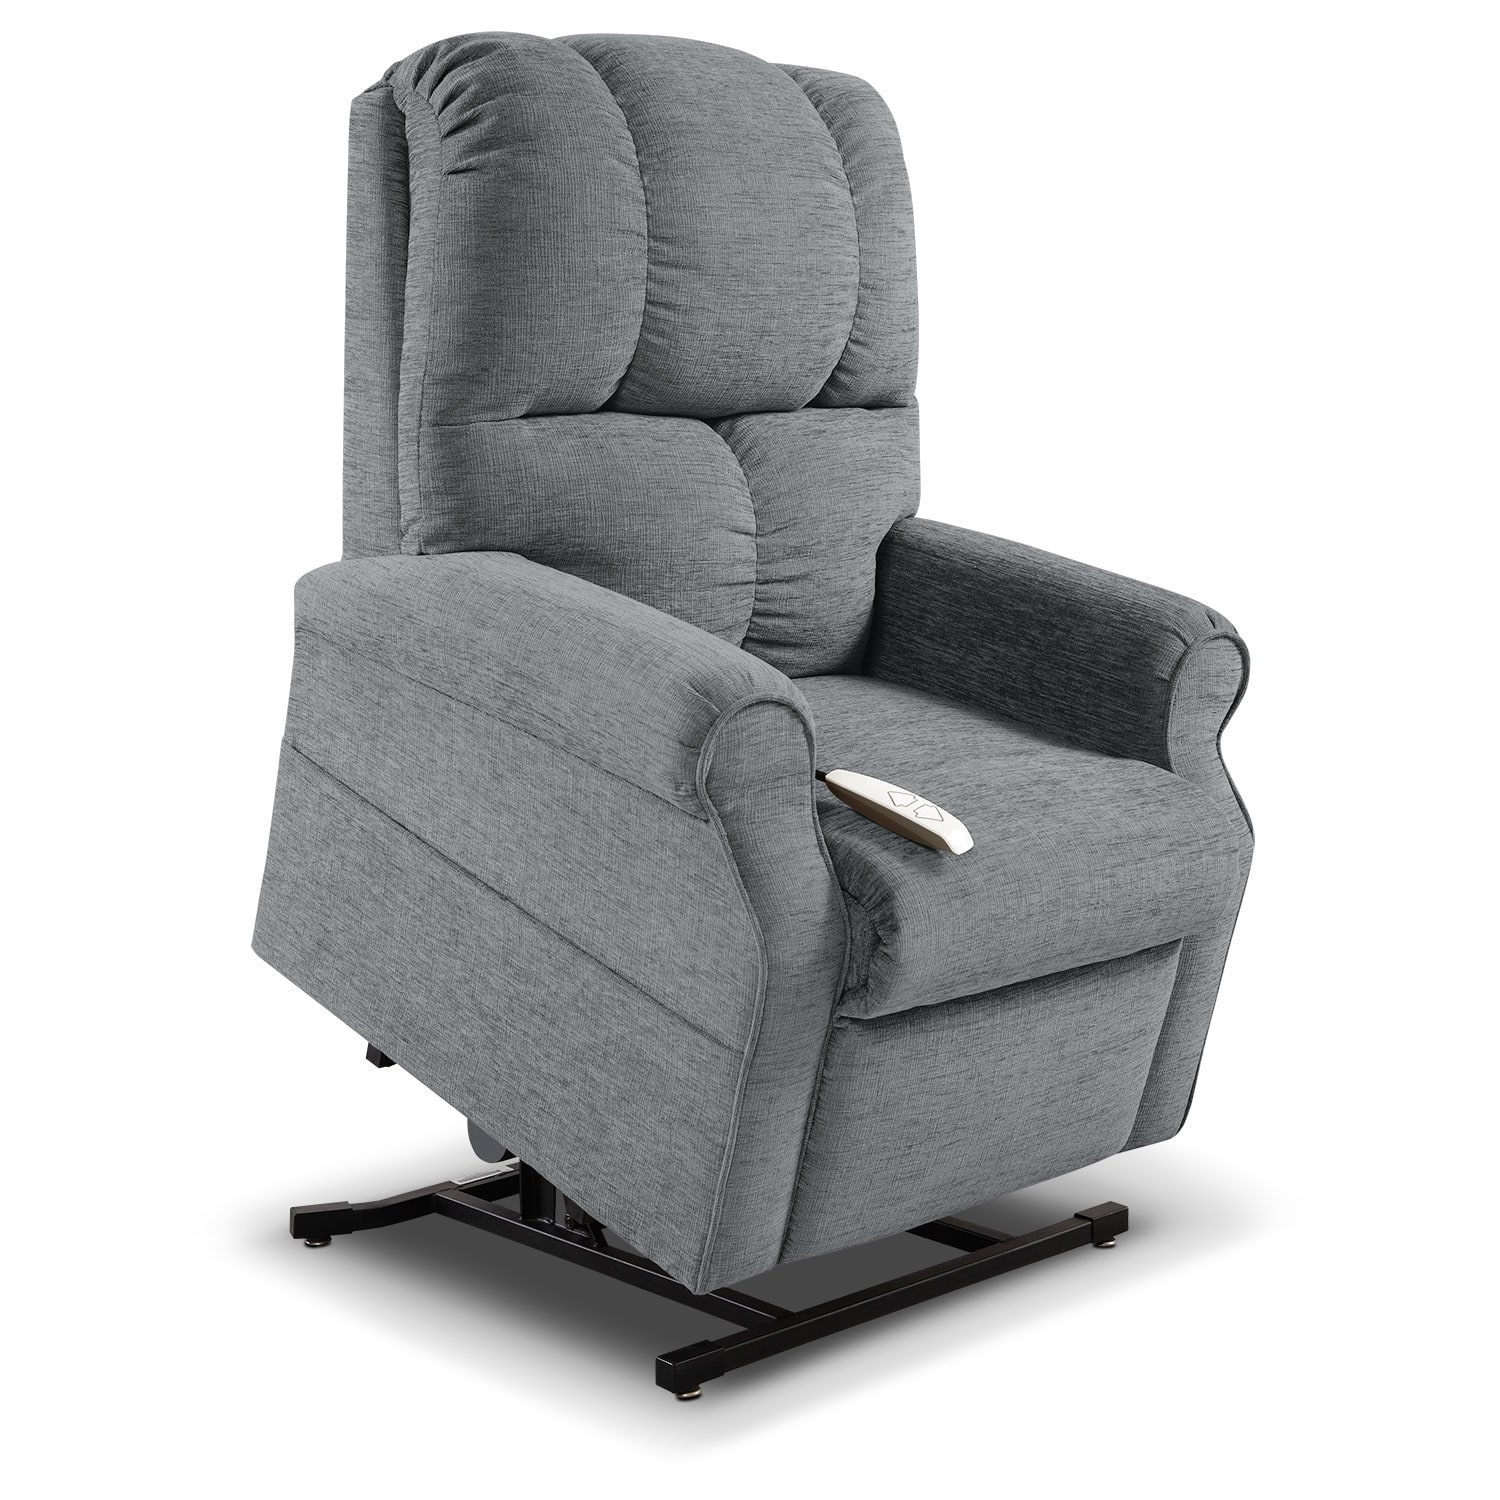 Tillie Lift Chair - Gunmetal